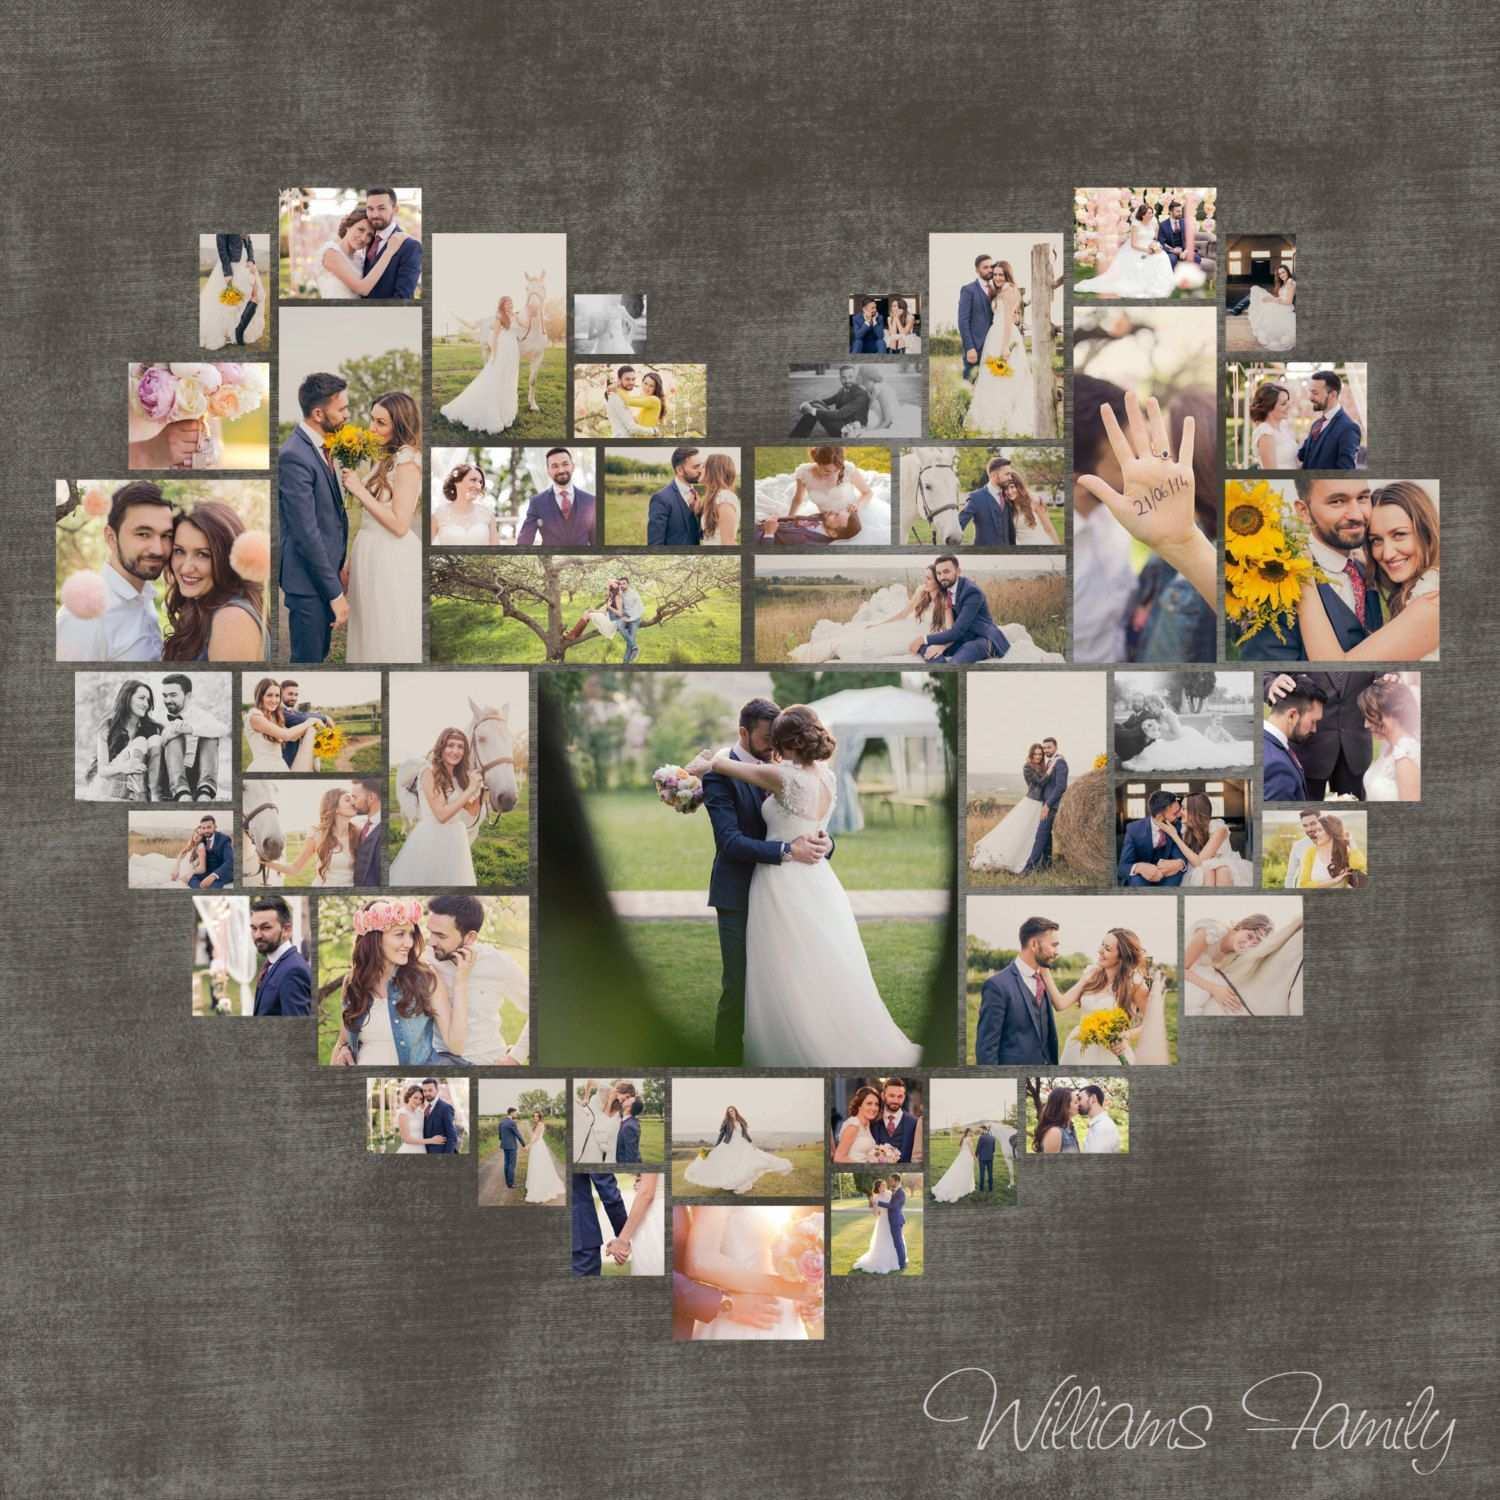 Heart Photo Collage Template Psd Wedding Gift Anniversary Etsy Heart Photo Collage Photo Heart Photo Collage Template